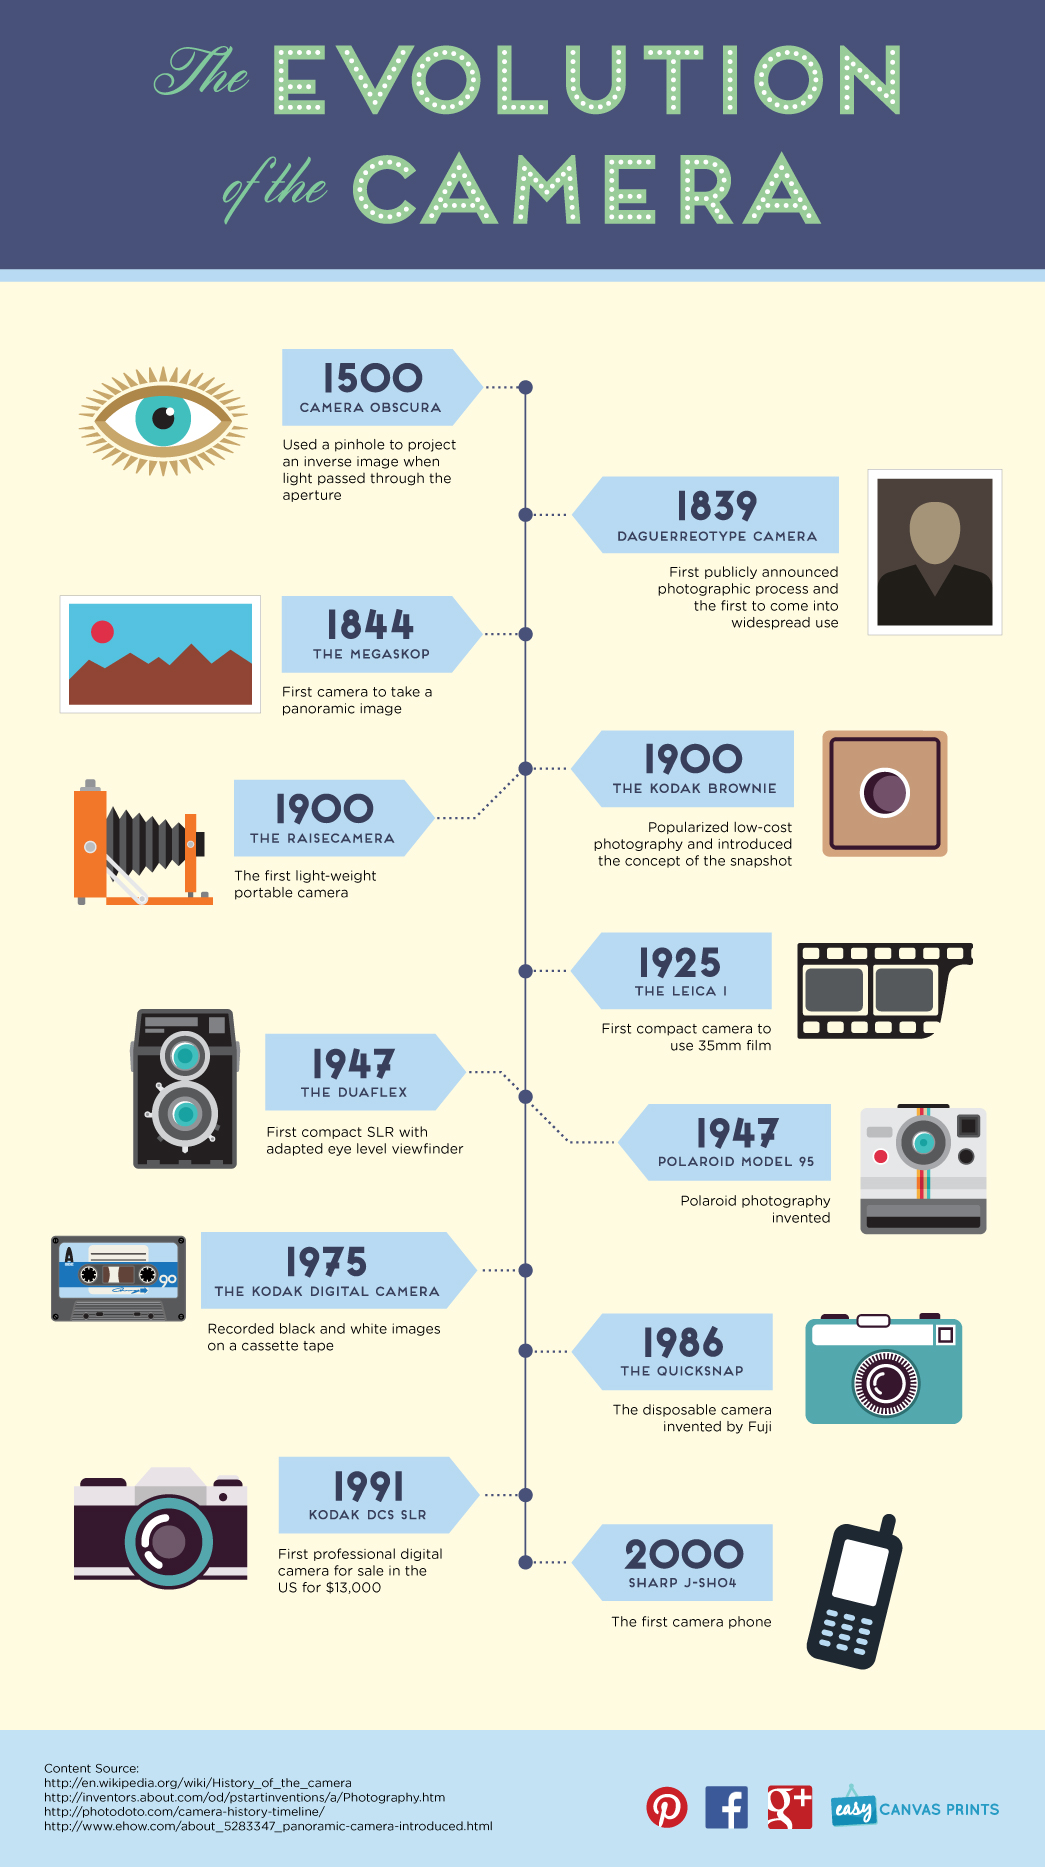 The Evolution of the Camera by Easy Canvas Prints